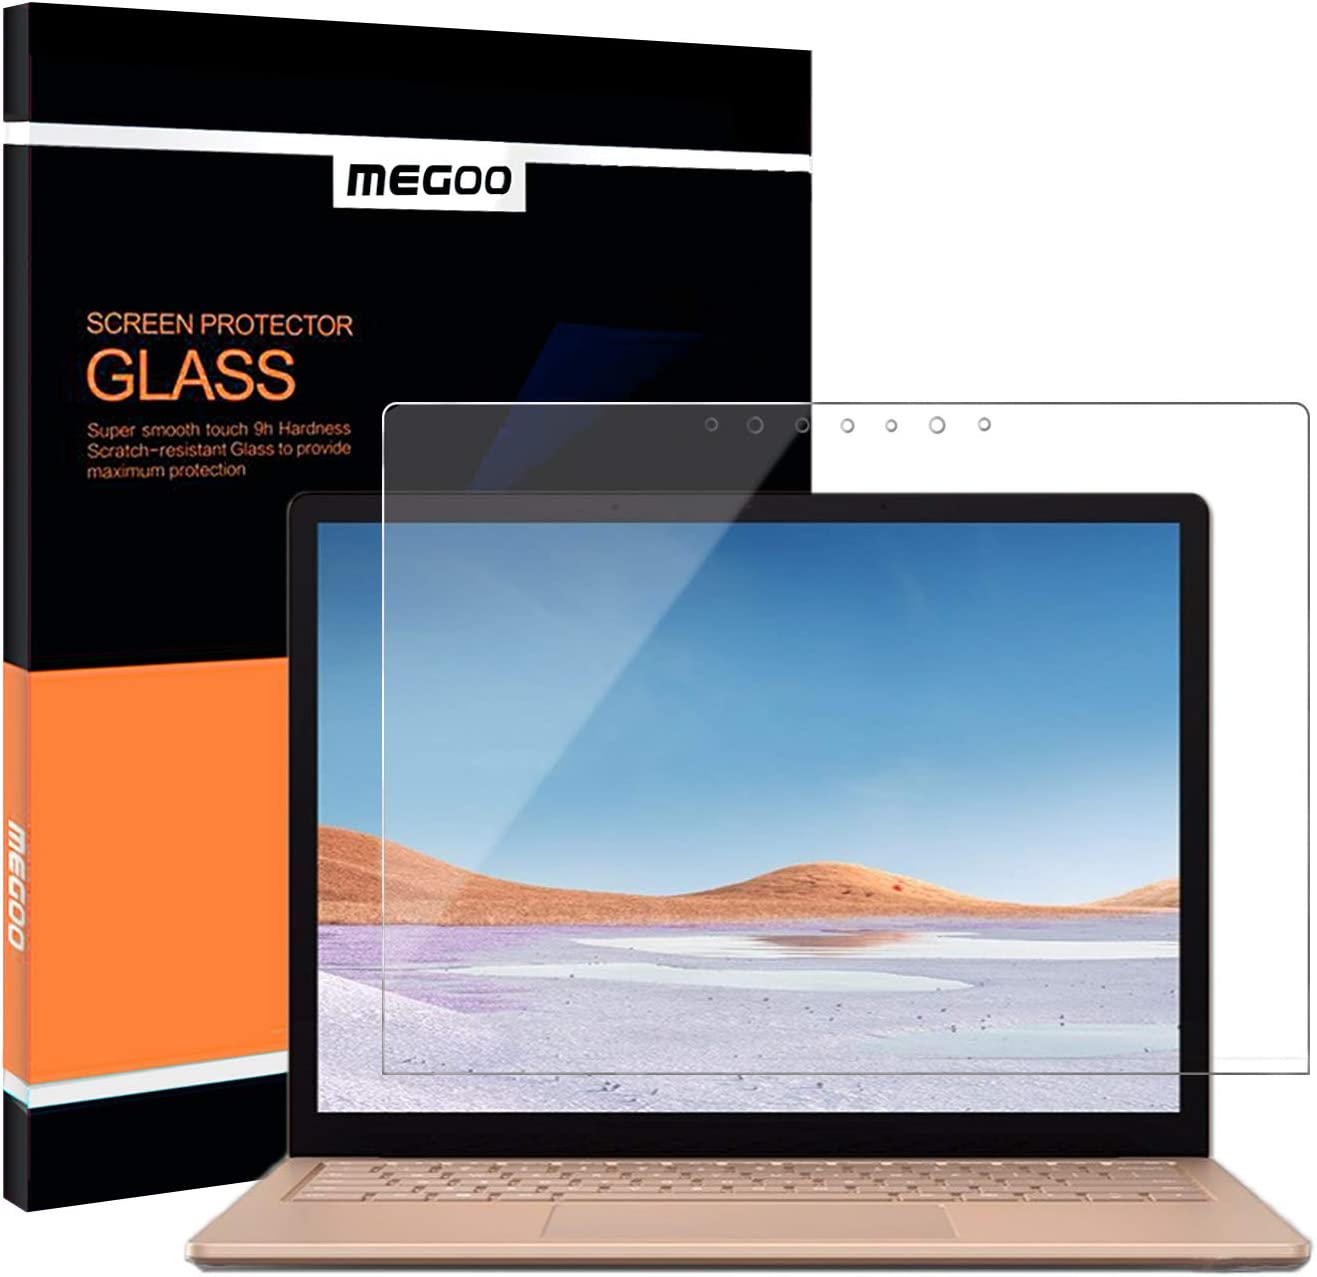 Megoo Tempered Glass Screen Protector for Microsoft Surface Laptop 4 (15 inch),Easy Installation, Scratch Resistant, Ultra Clear Screen Protector for Surface Laptop 4/3 15 inch